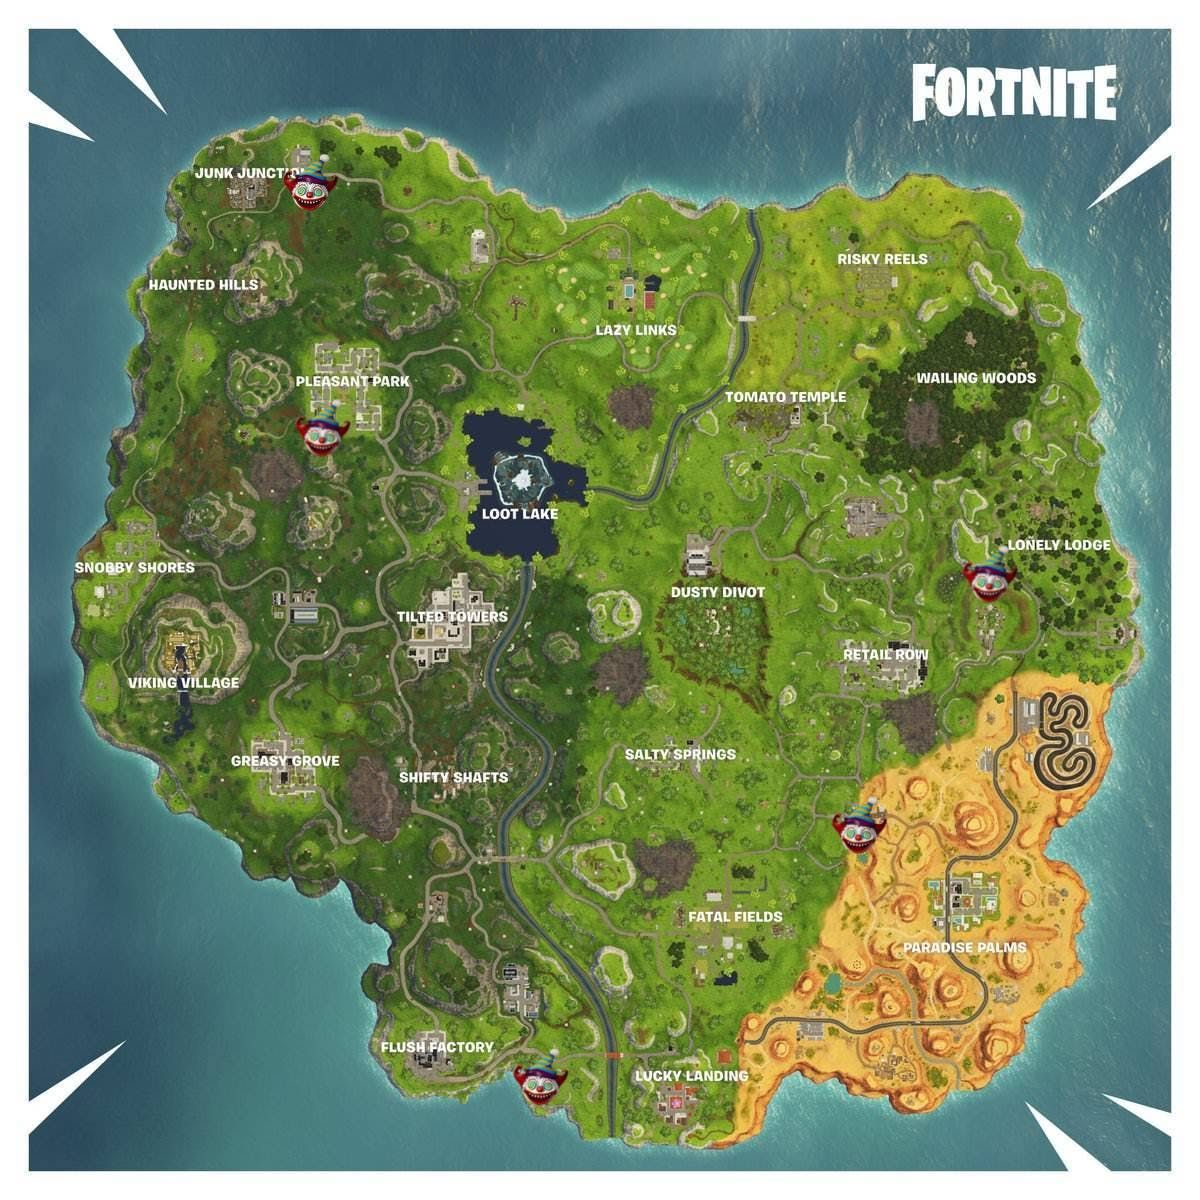 Fortnite Carnival Clown Board Locations And Week 9 Challenge Guide